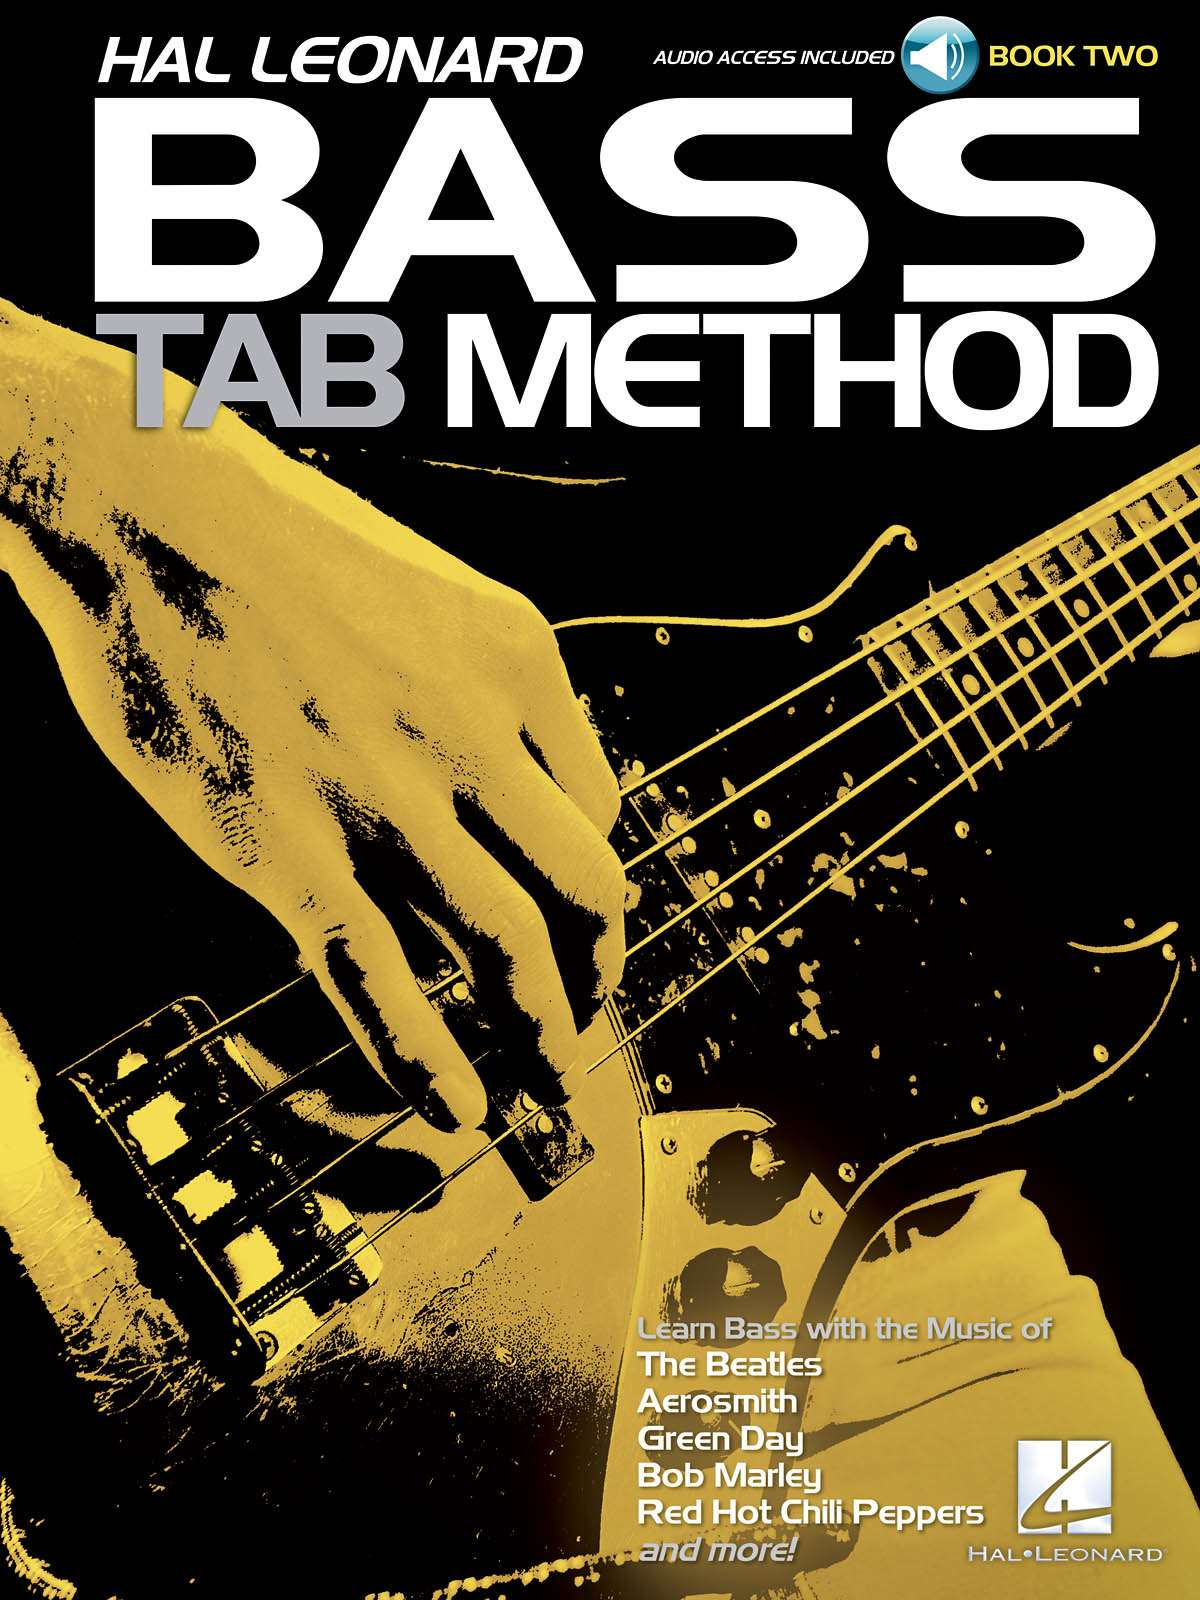 Hal Leonard Hal Leonard Bass Tab Method Book 2 Bass Guitar Book